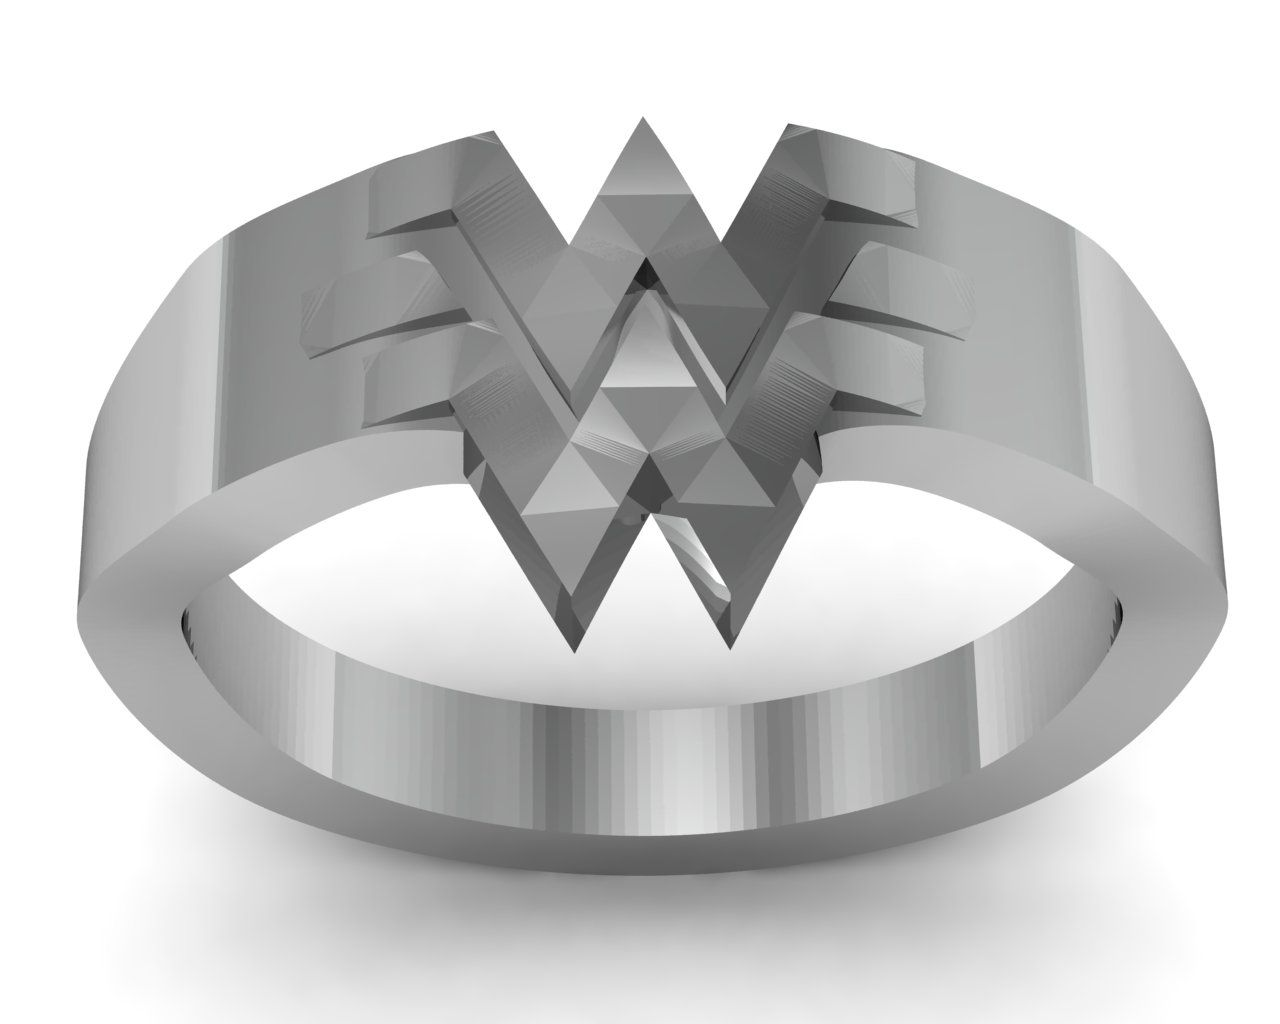 Buy a handmade wonder woman ring in sterling silver made to order buy a handmade wonder woman ring in sterling silver made to order from fine geek jewelry custommade biocorpaavc Images